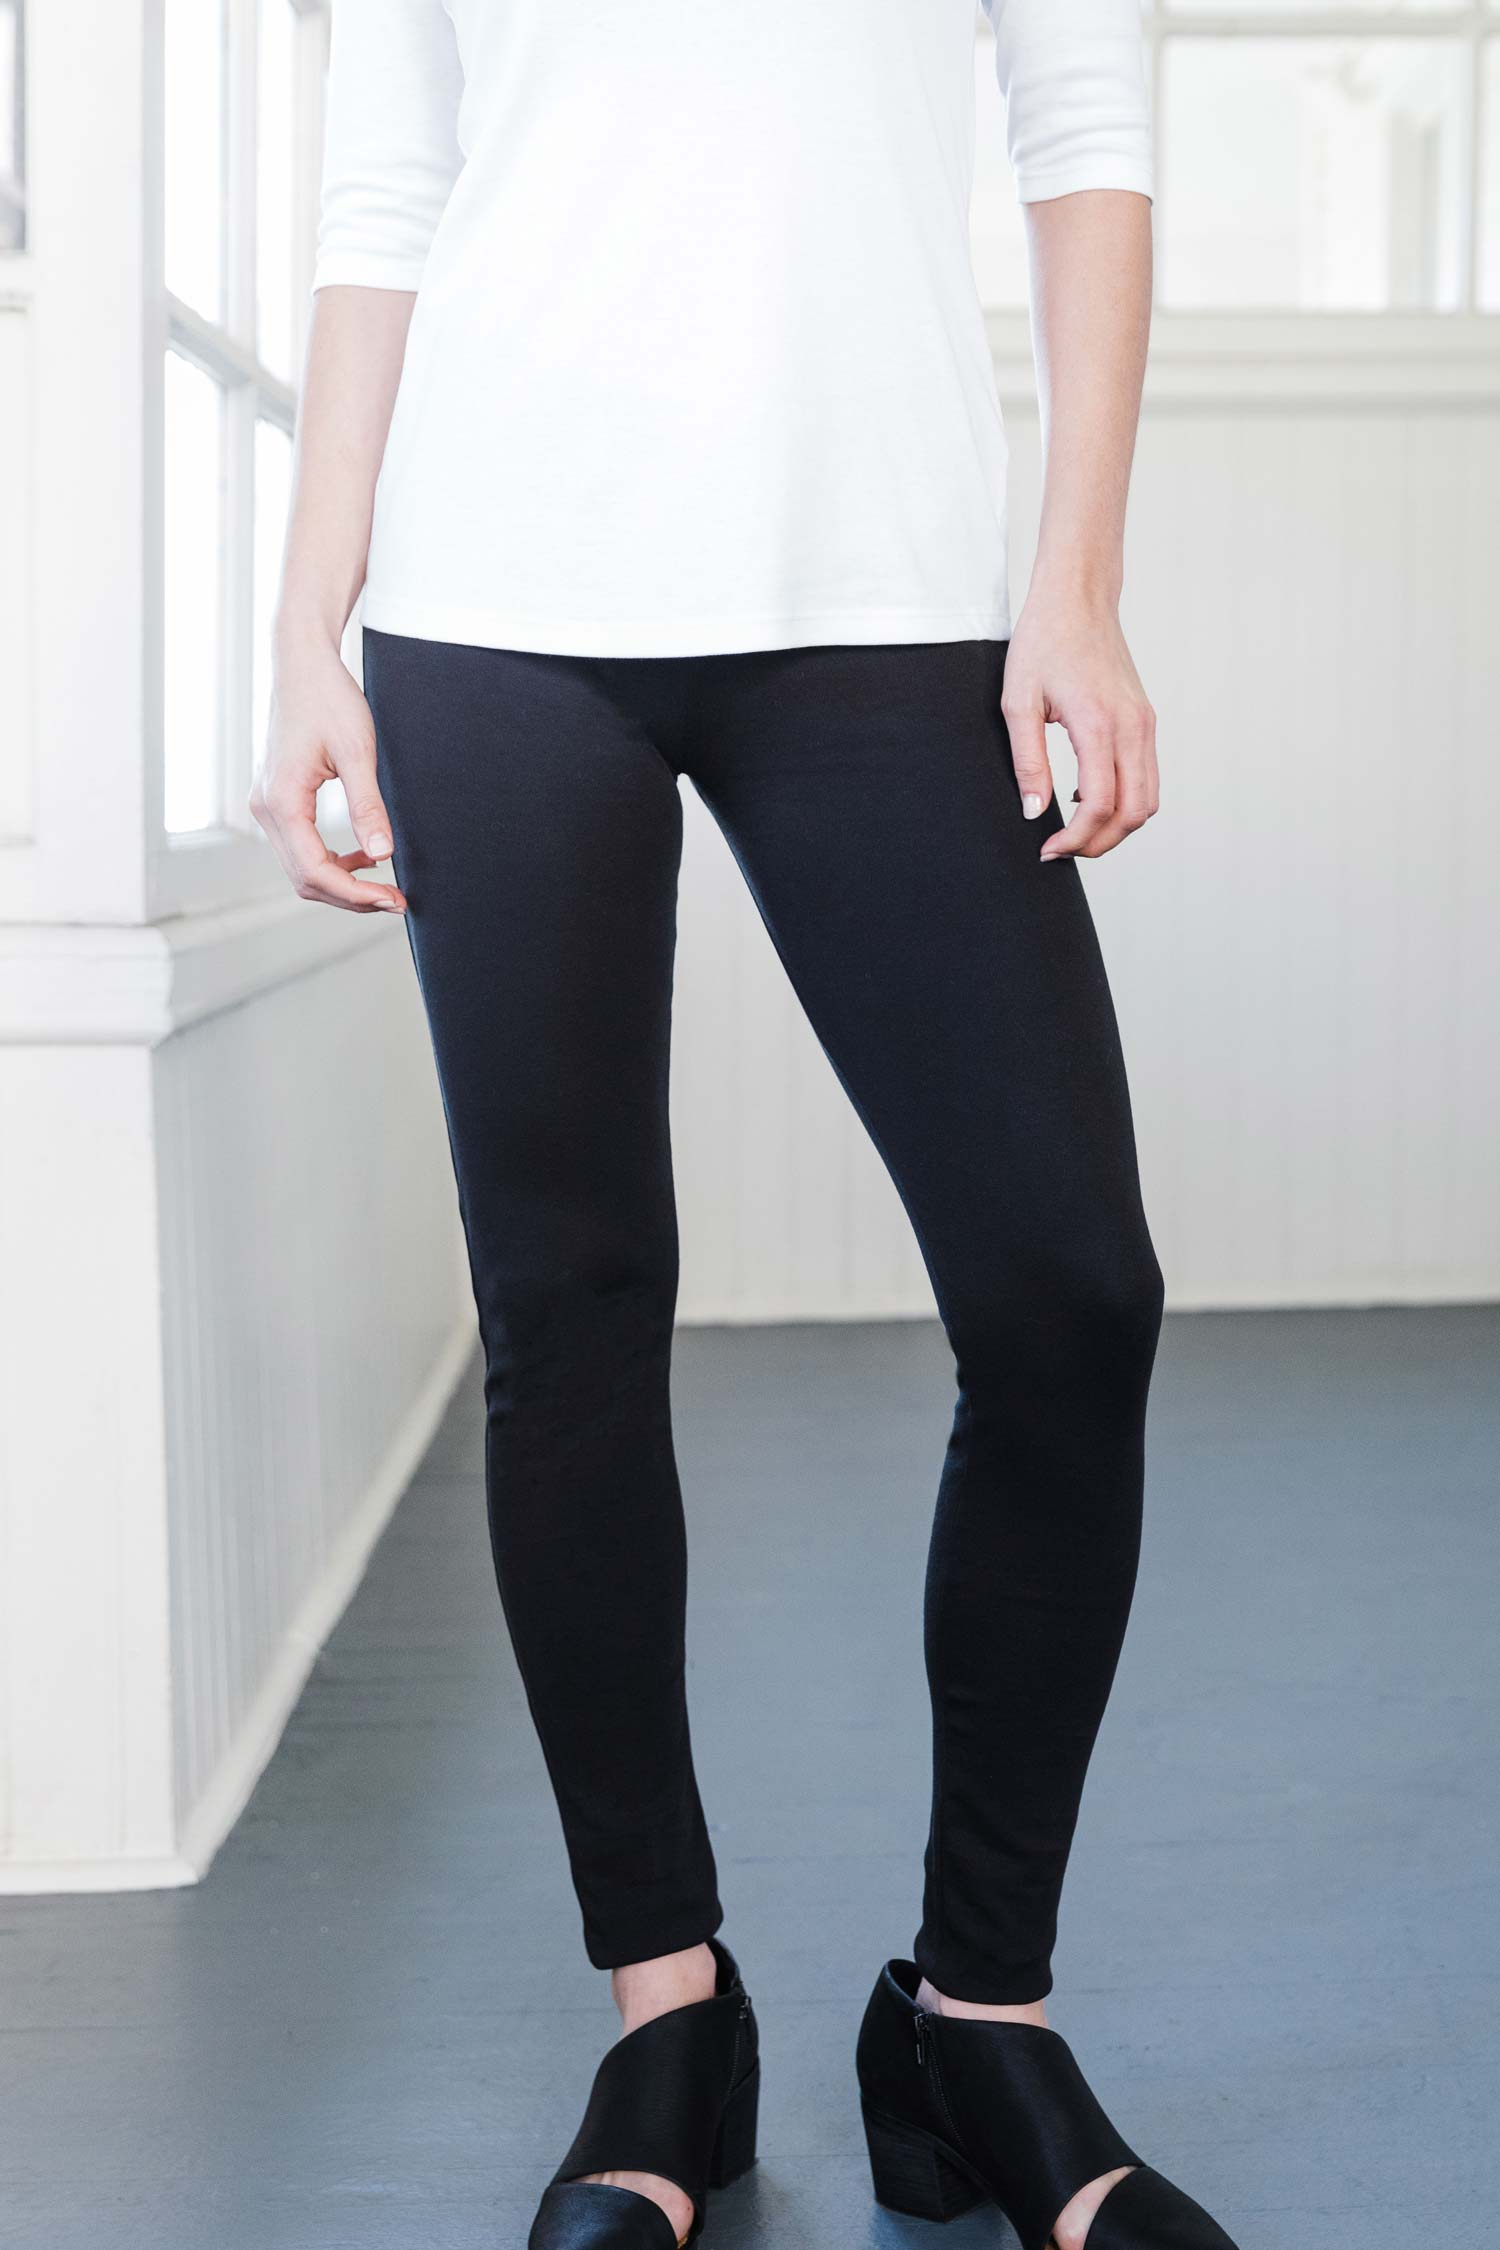 Womens Black Leggings | Organic Cotton Clothing